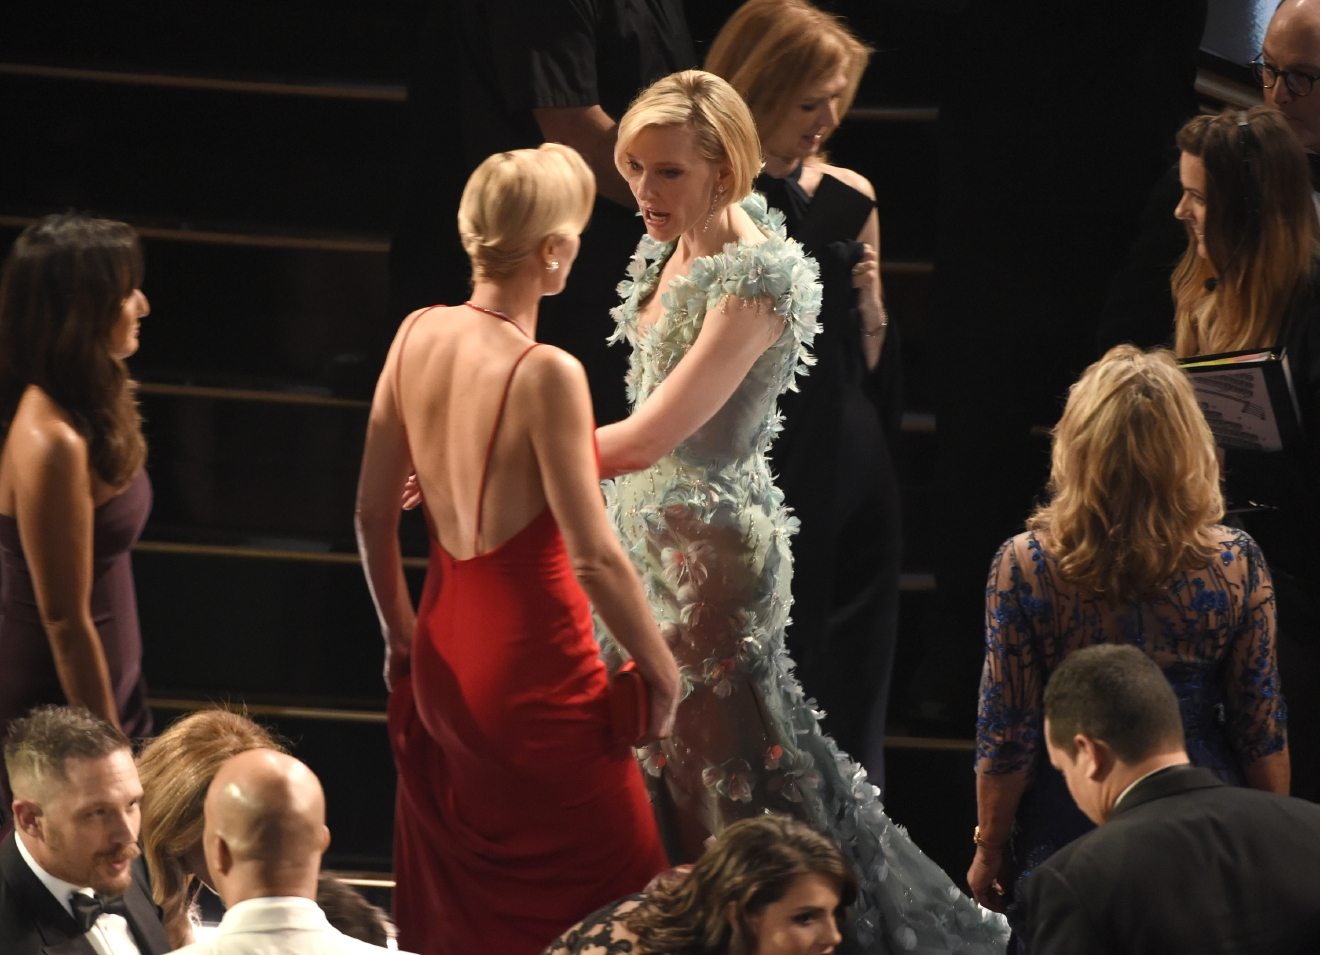 Charlize Theron, left, and Cate Blanchett appear in the audience at the Oscars on Sunday, Feb. 28, 2016, at the Dolby Theatre in Los Angeles. (Photo by Chris Pizzello/Invision/AP)